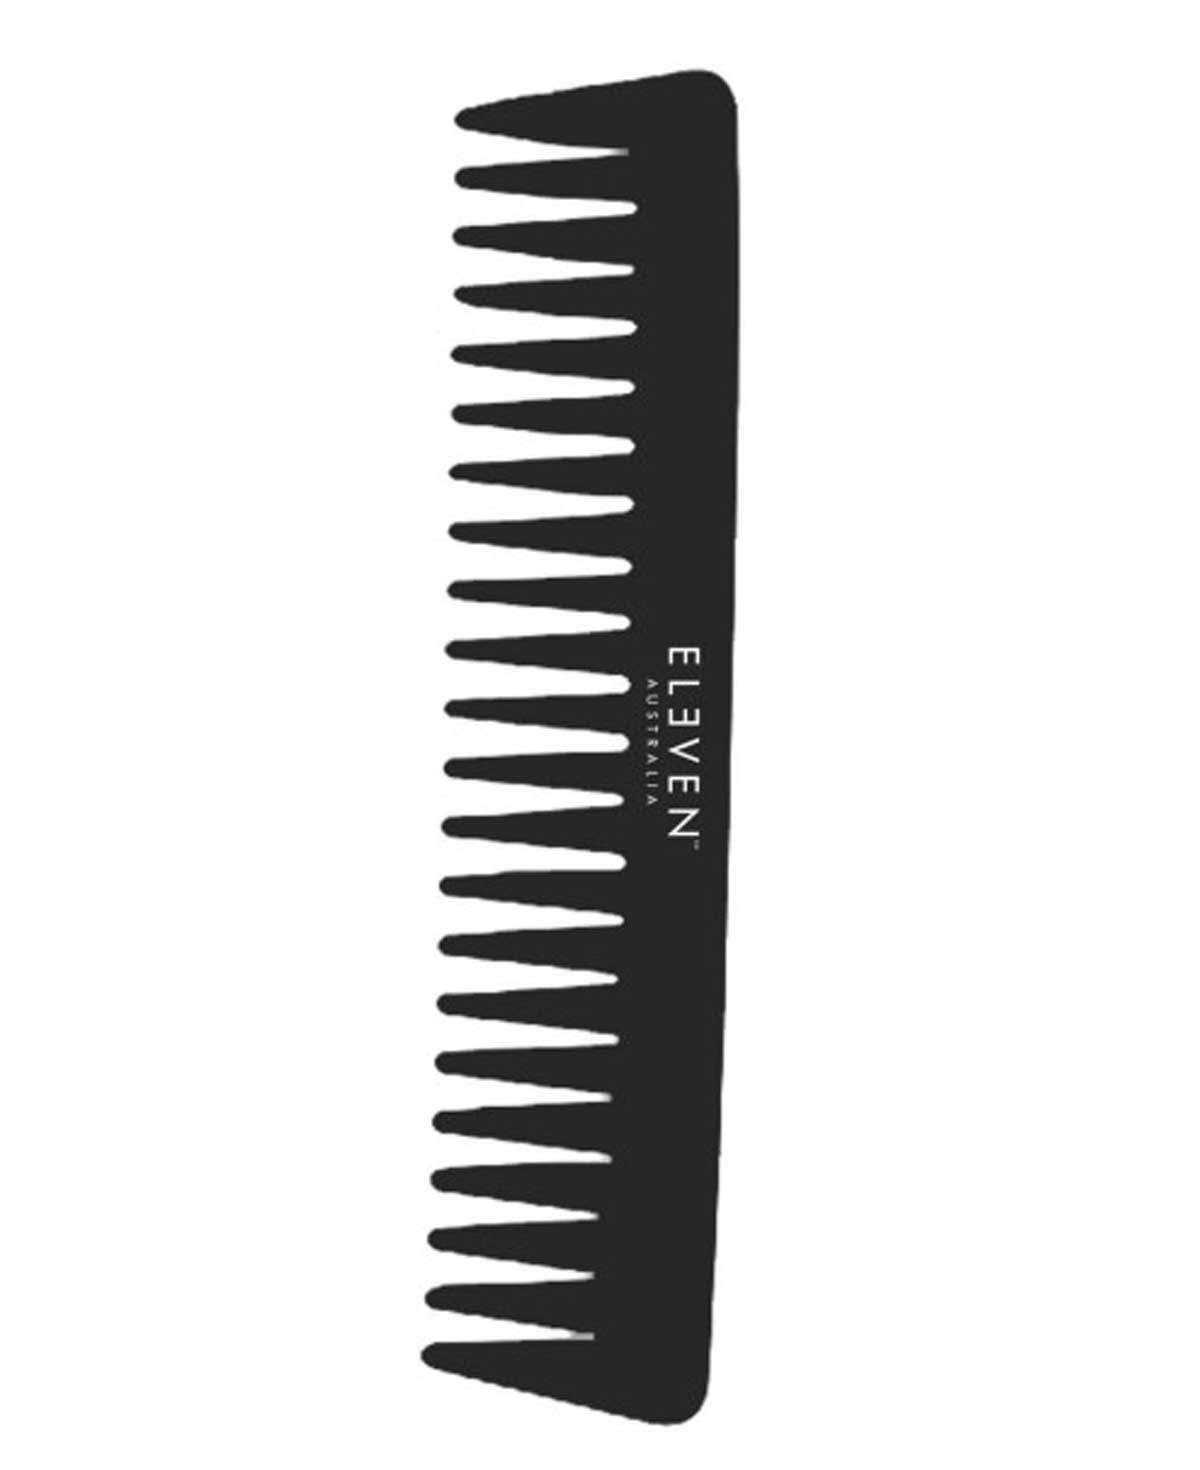 Eleven Black Wide Tooth Comb